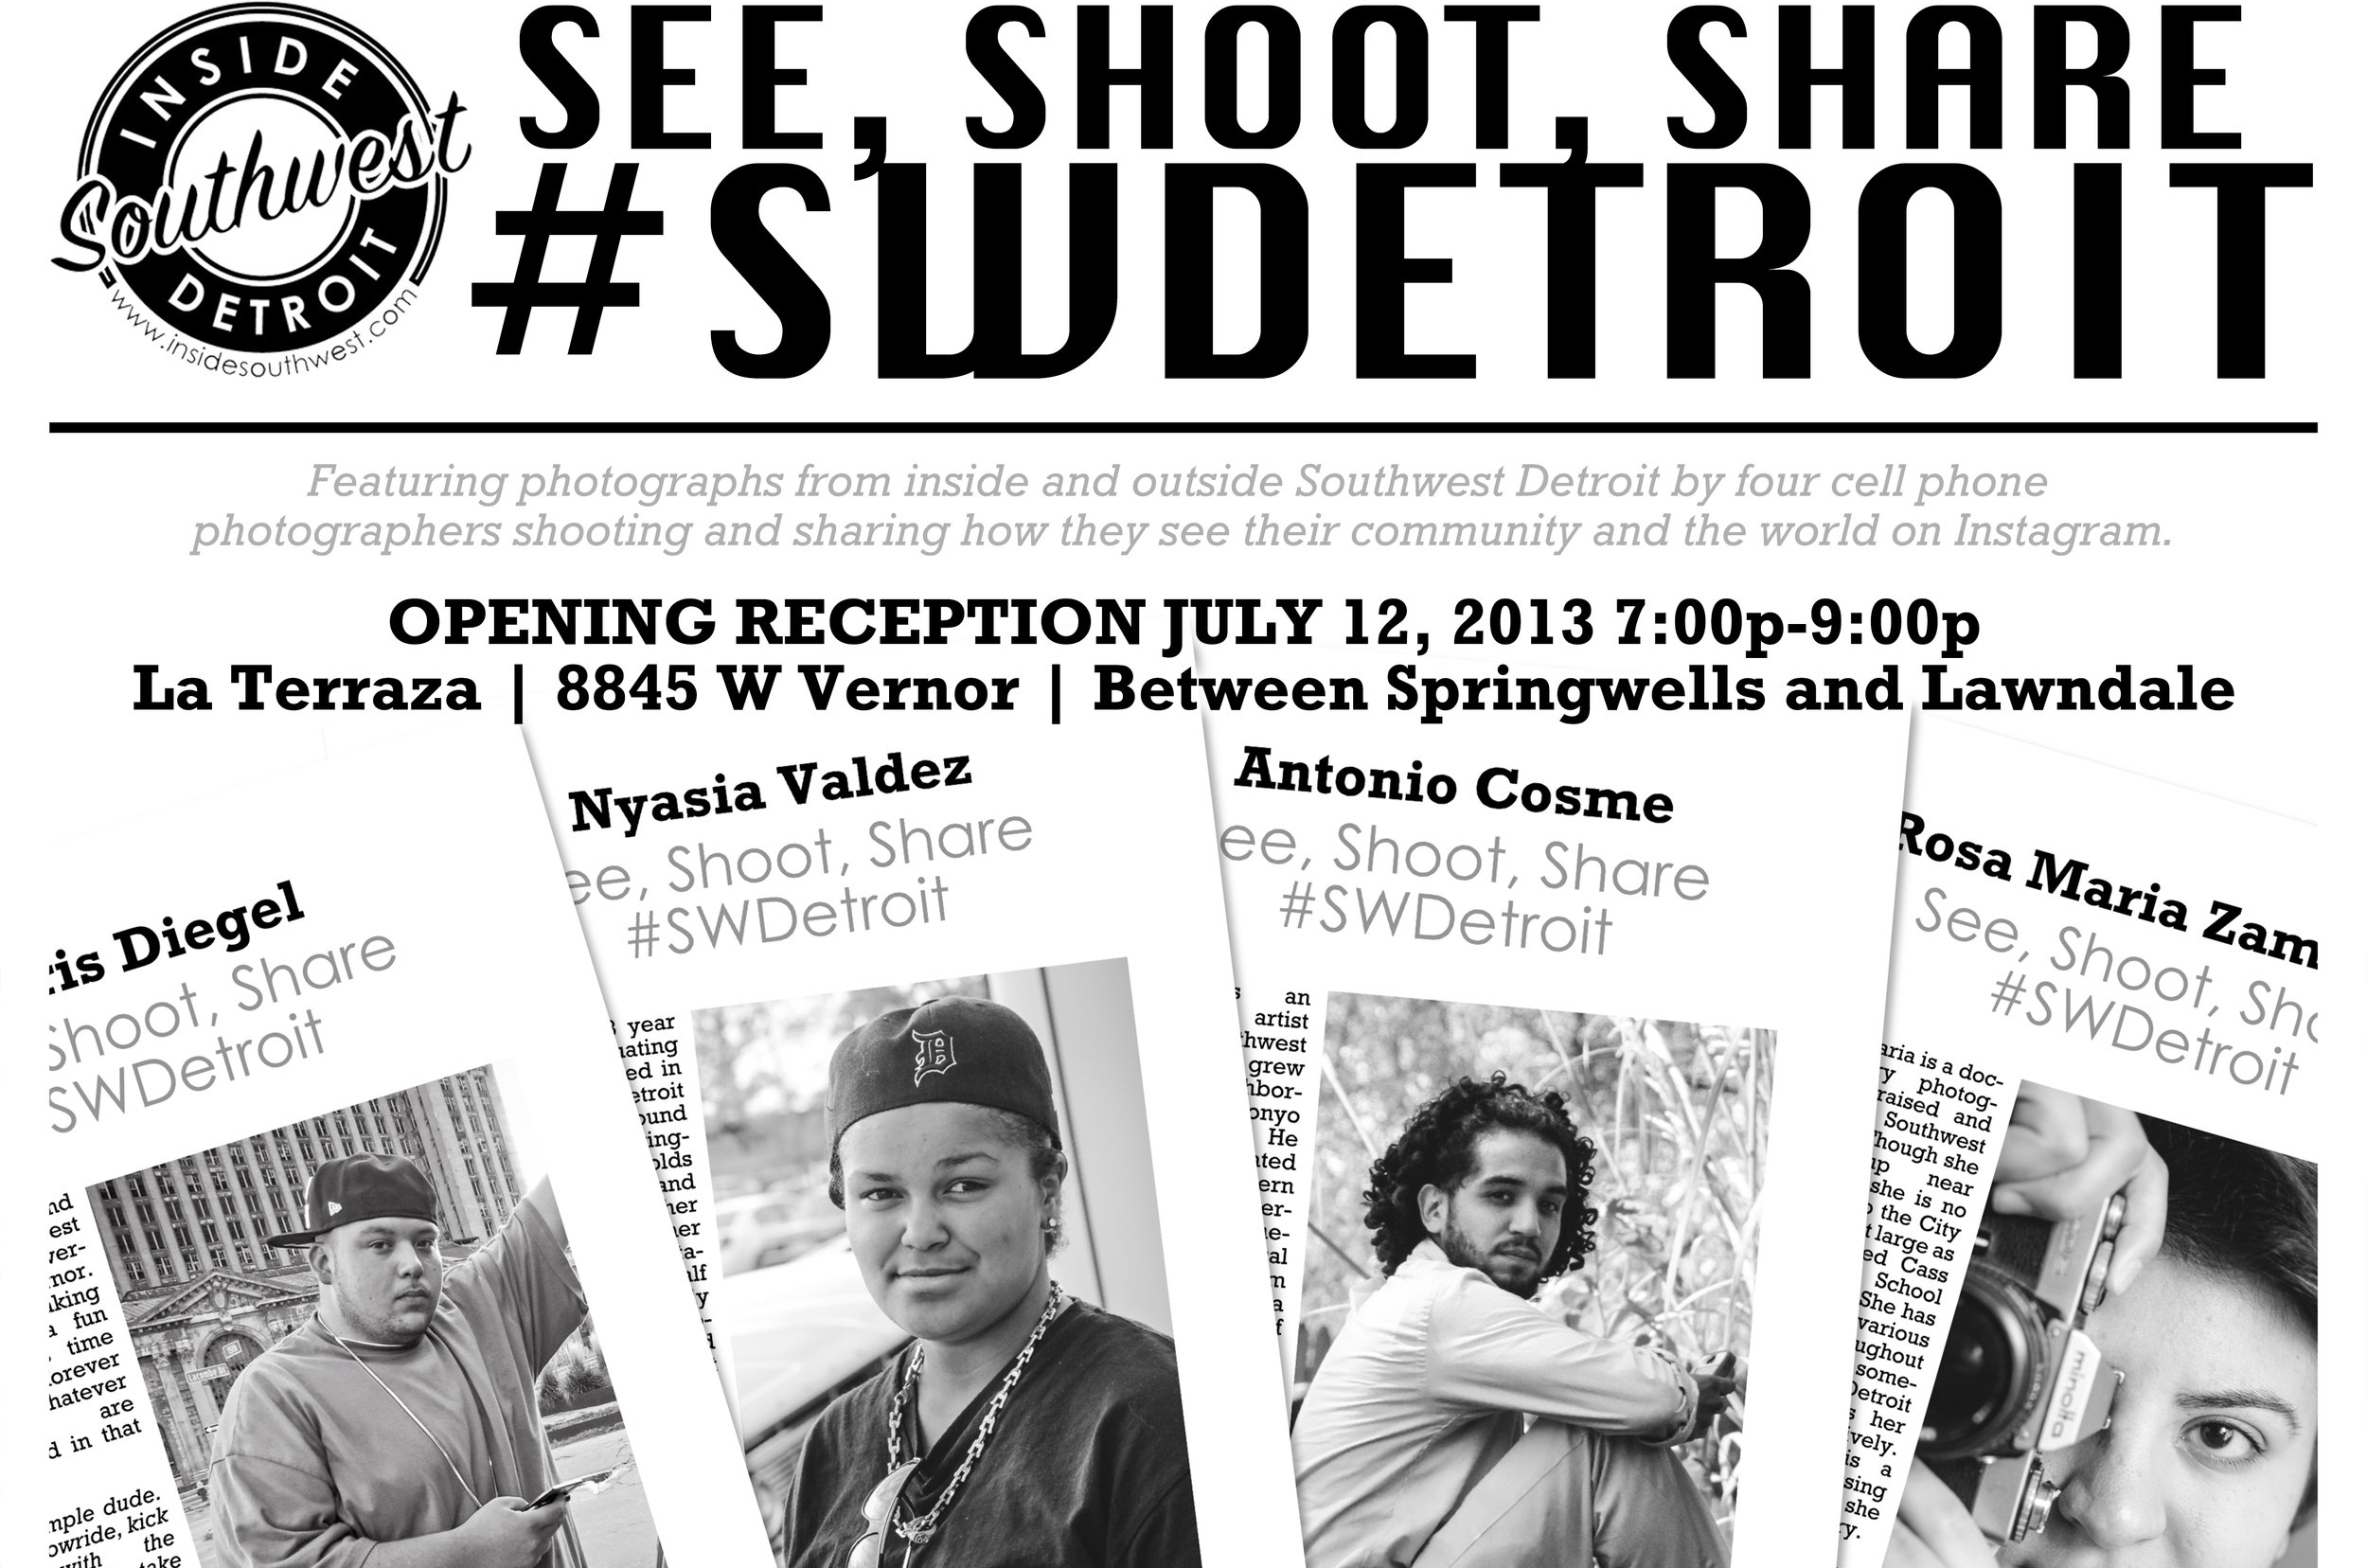 flyer-130703 (See, Shoot, Share #SWDetroit Exhibit)-LARGER.jpg